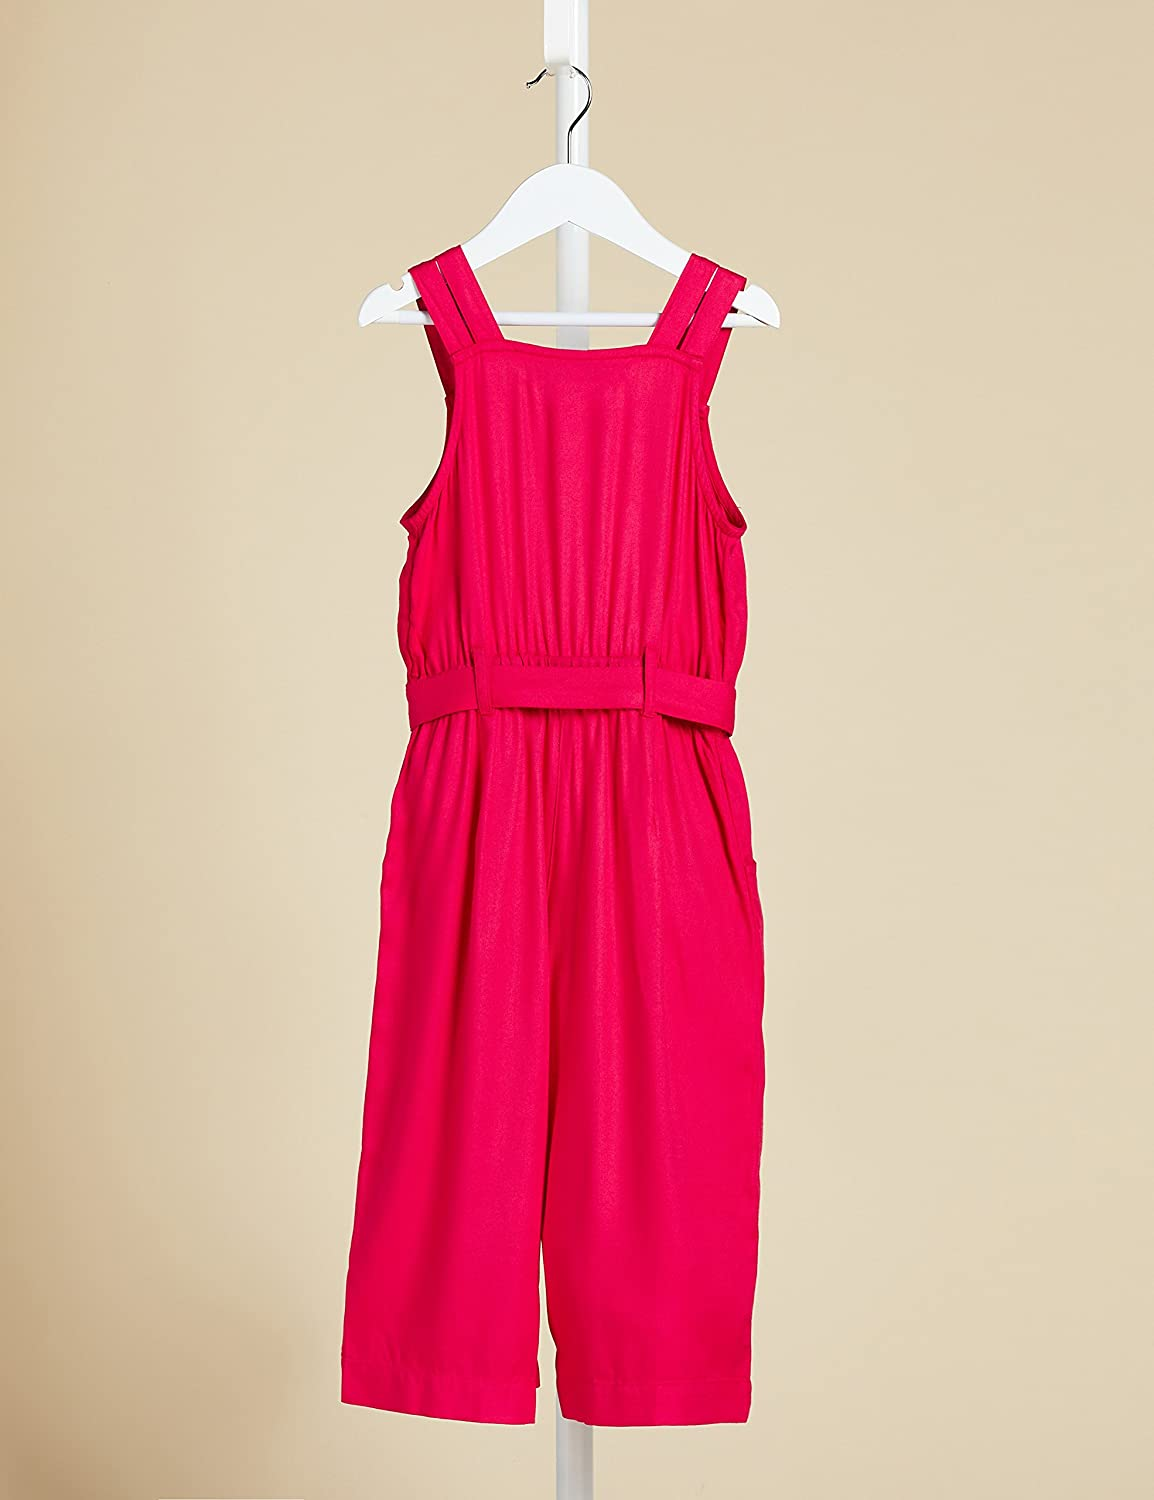 Brand RED WAGON Girls Jumpsuit